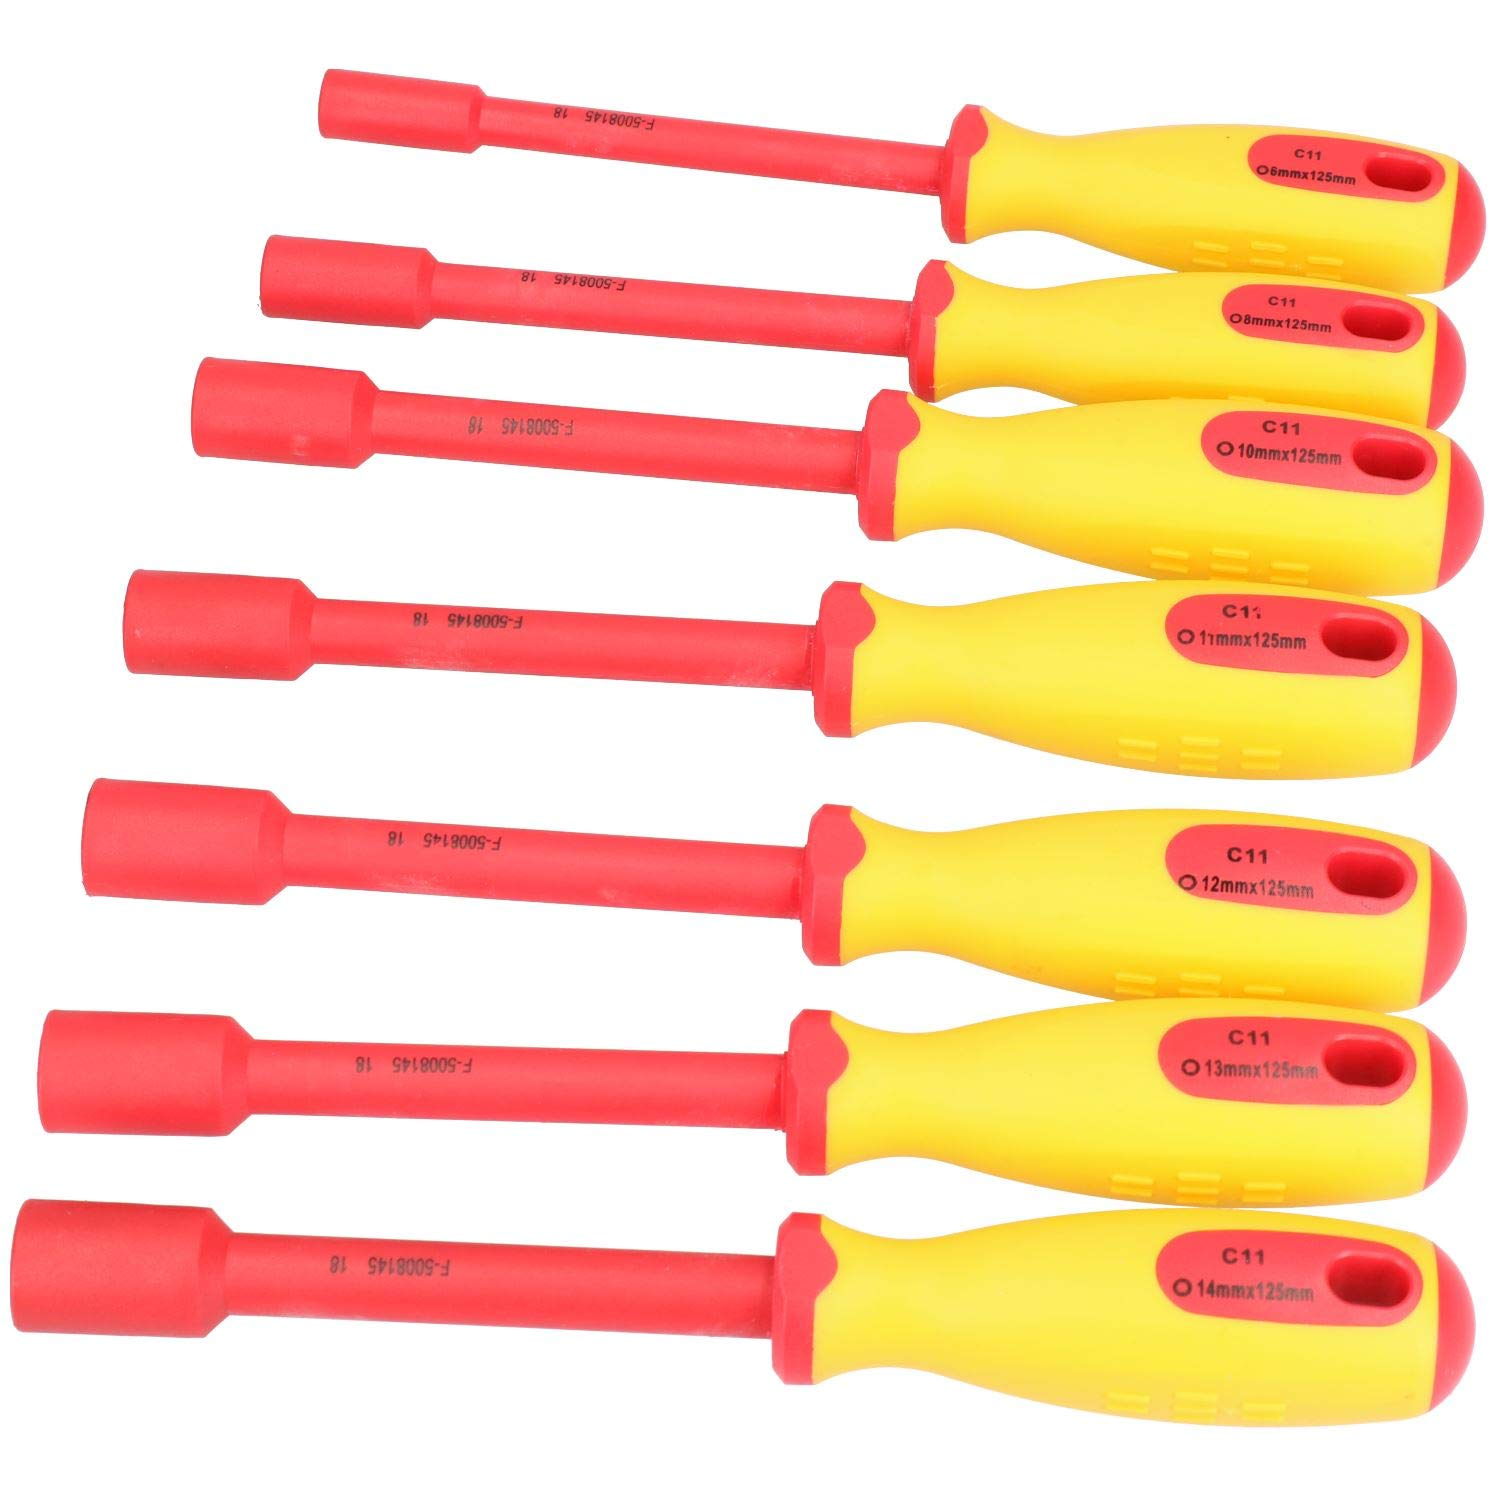 Nut Drivers Screwdrivers gaixample.org 7pc Metric VDE Insulated ...